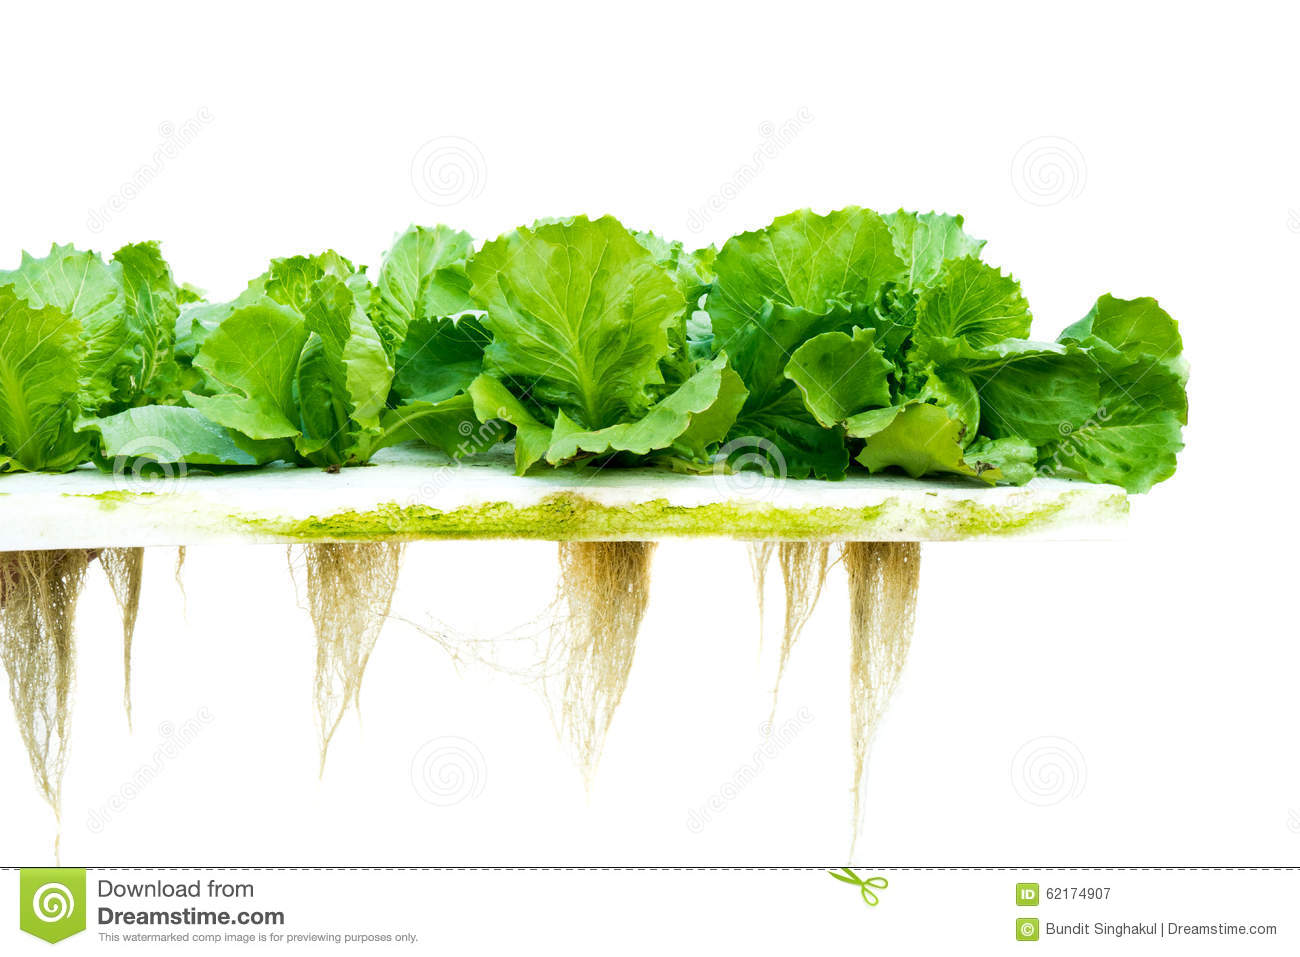 hydroponics on lettuce production essay Effects of different hydroponics systems and growing media on lettuce and herbs as well as production takes place inside enclosures that give control.